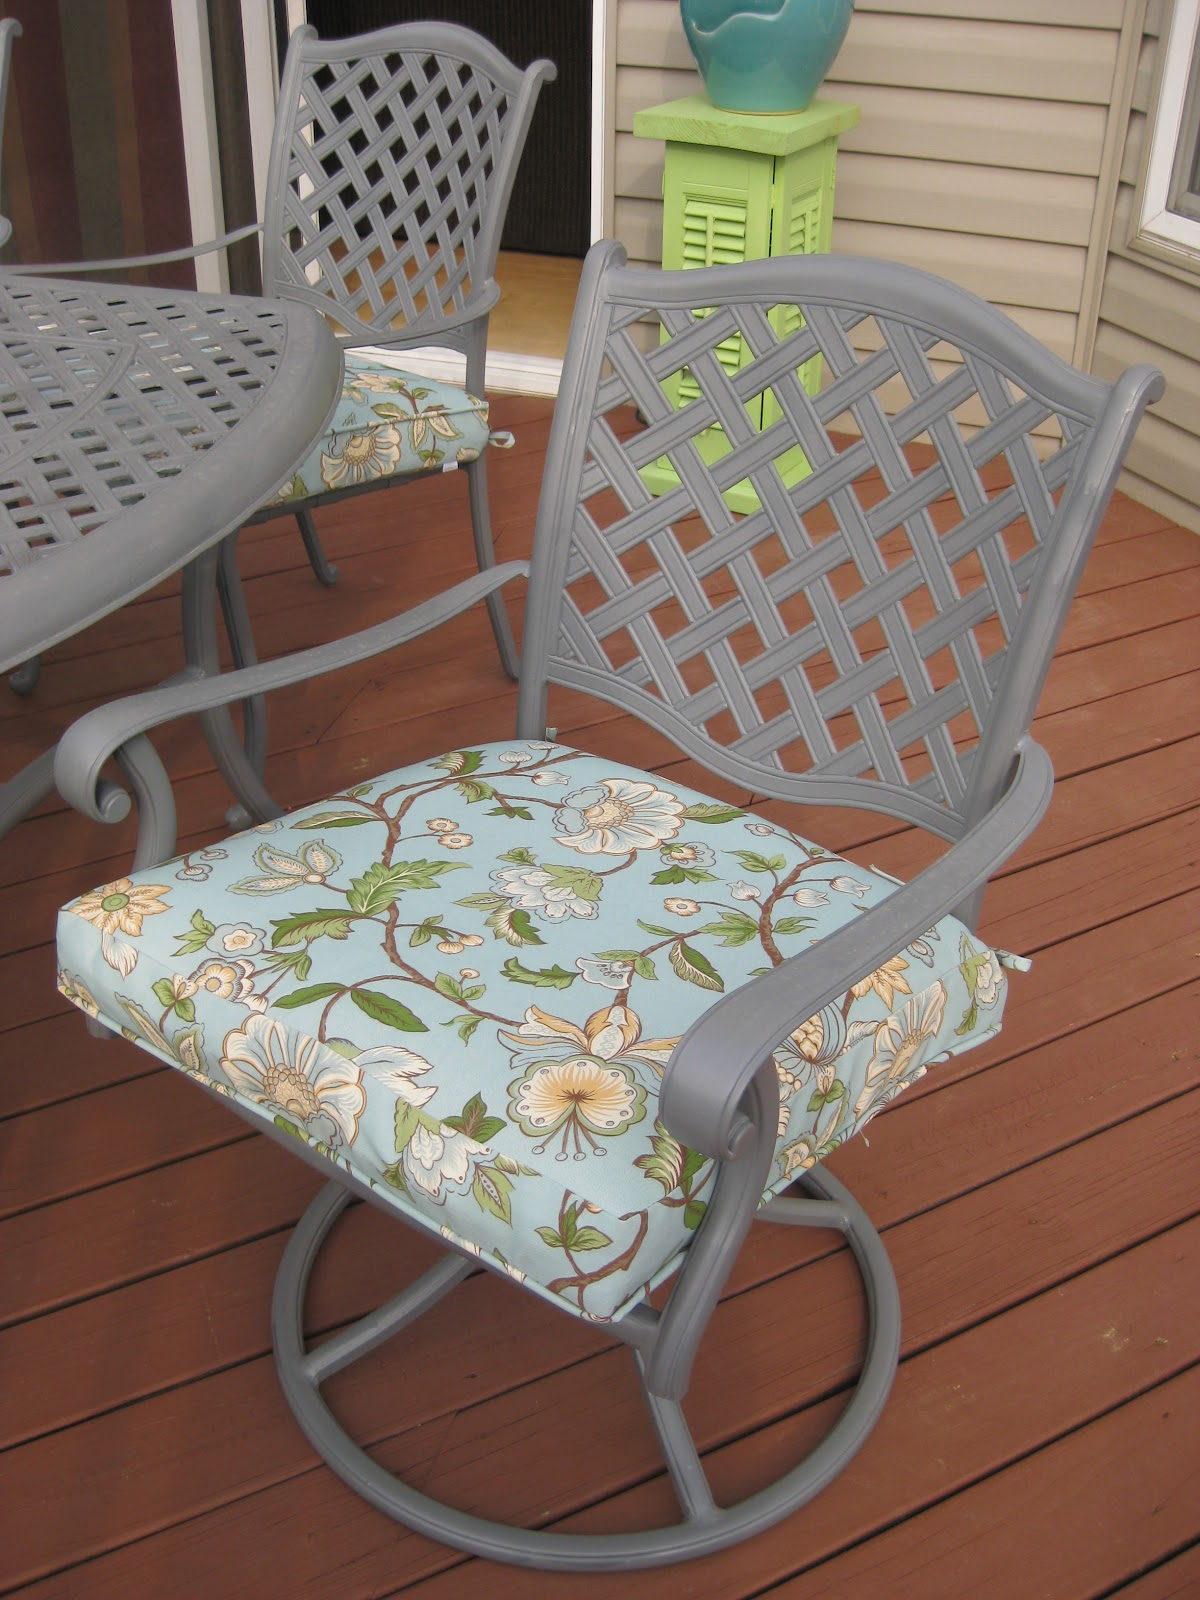 Our Pinteresting Family Patio Furniture redo using Spray Paint by